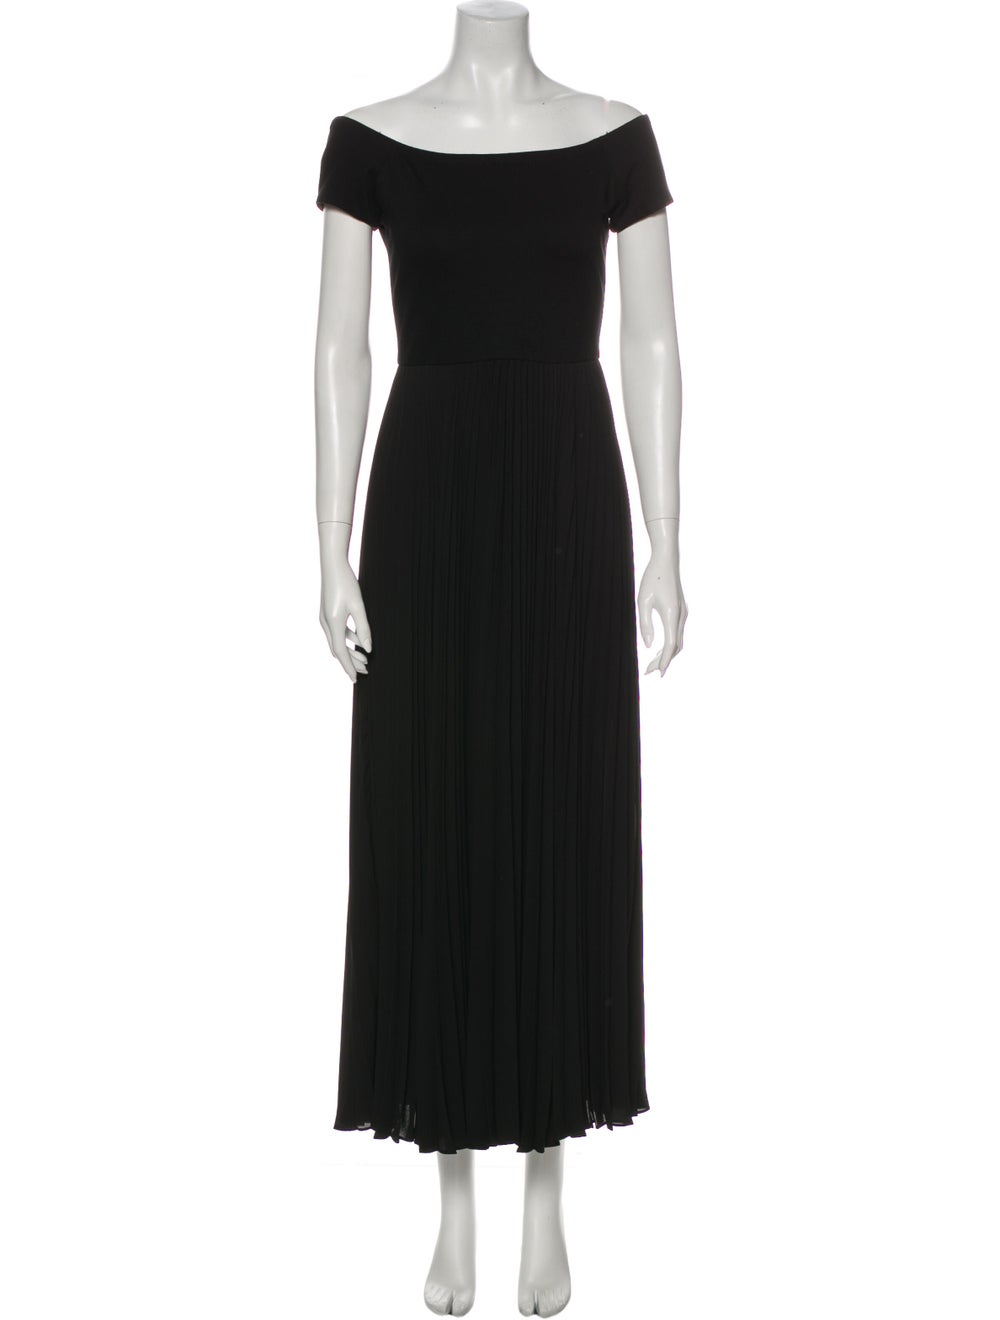 NEW $485 Alice and Olivia Mitsy Off-the-Shoulder Maxi Dress 0